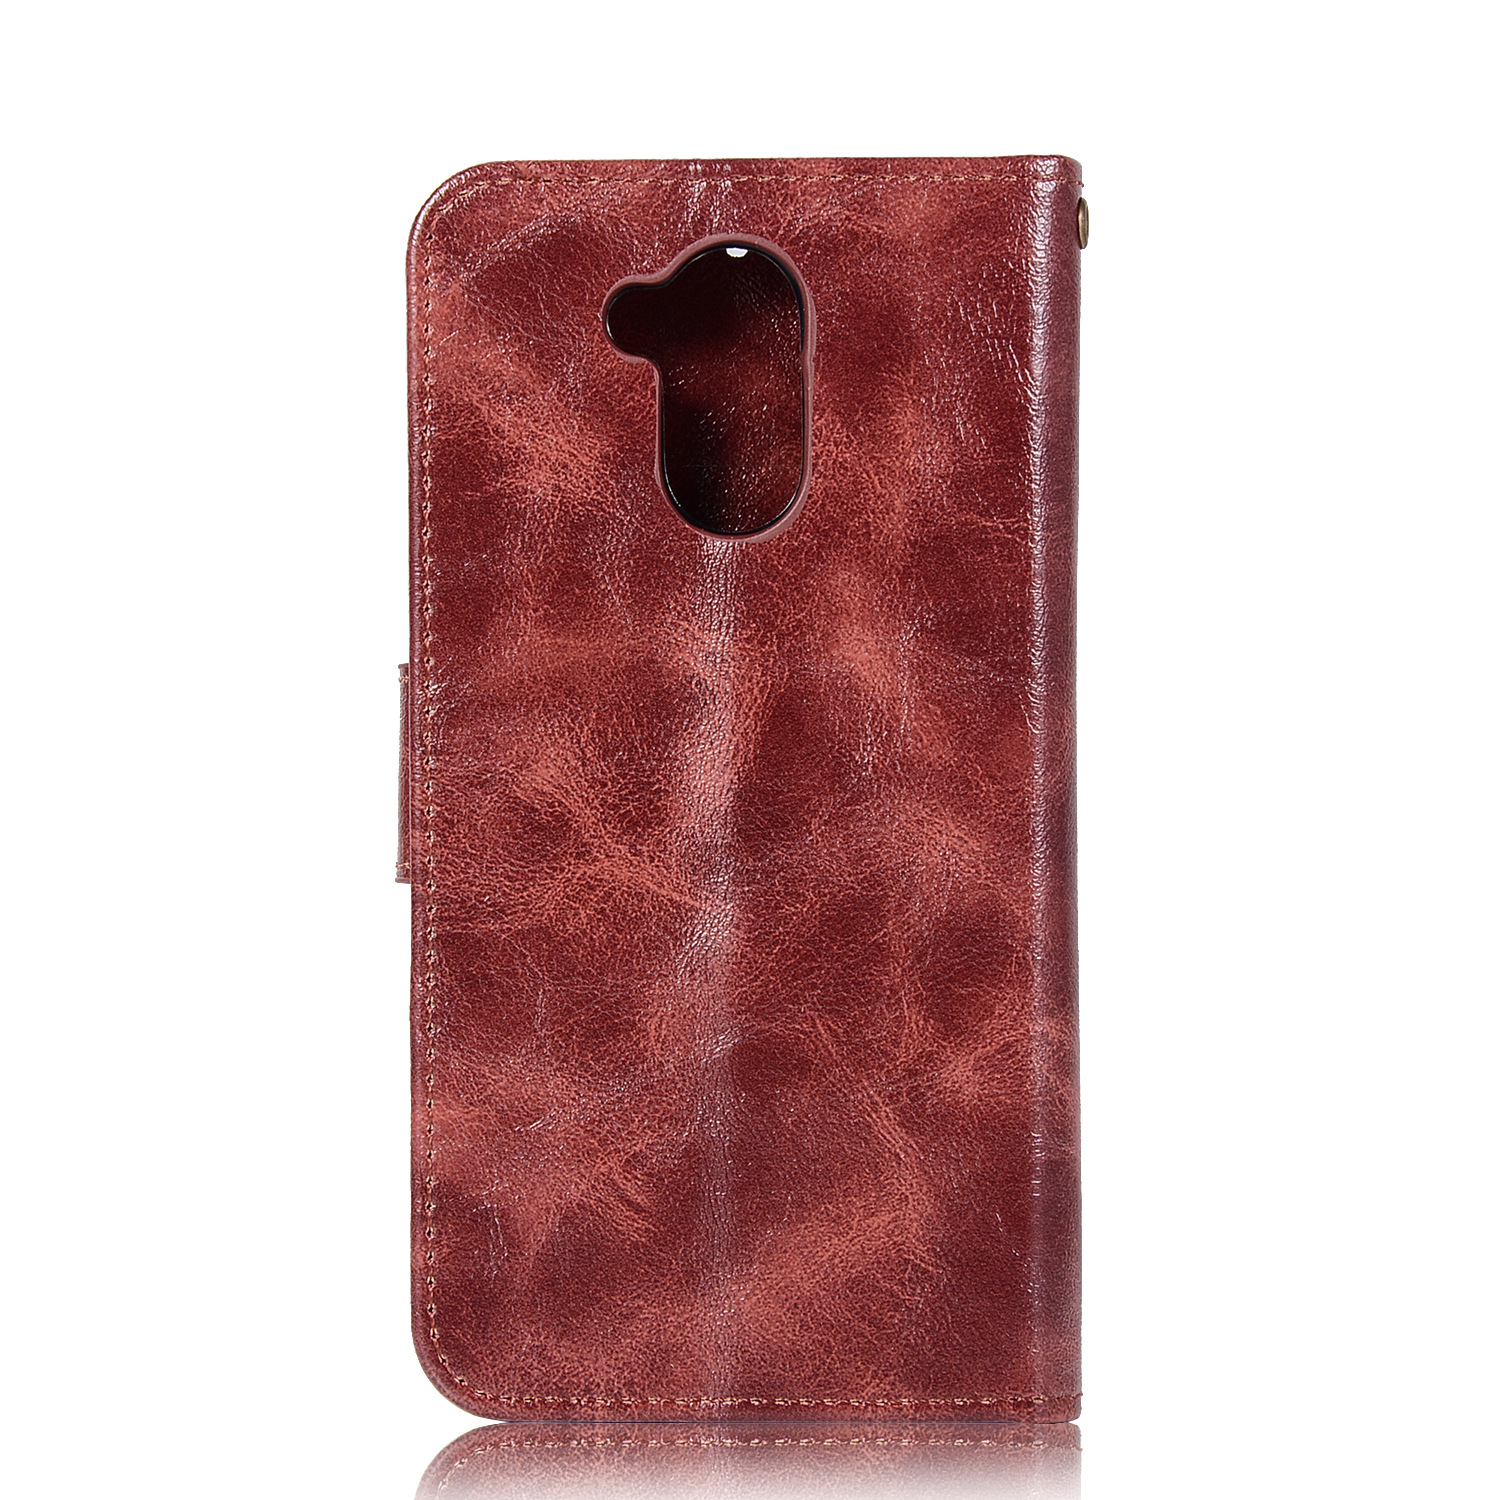 Image 4 - 20PCS Retro Business Cases Wallet For Huawei Honor 6C Pro Case Retro Flip Book Leather Cover For Huawei 6C Pro Phone Protector-in Wallet Cases from Cellphones & Telecommunications